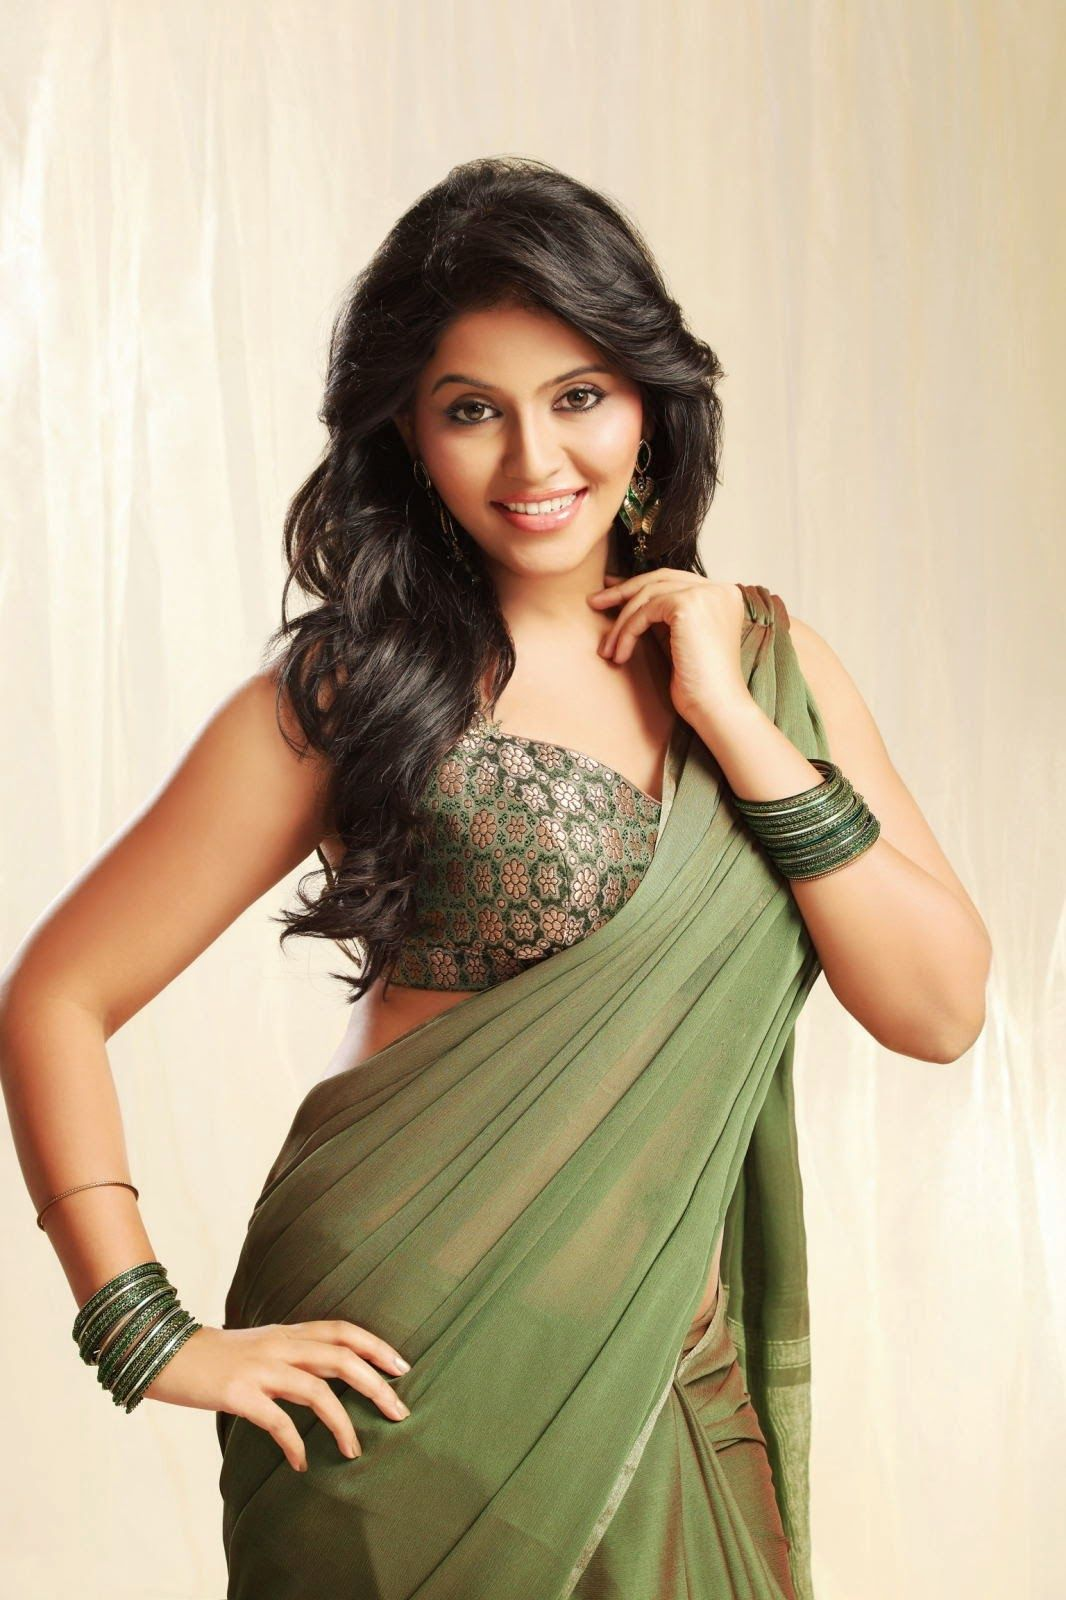 Telugu Actress Hot Images Gallery - Starspy.in